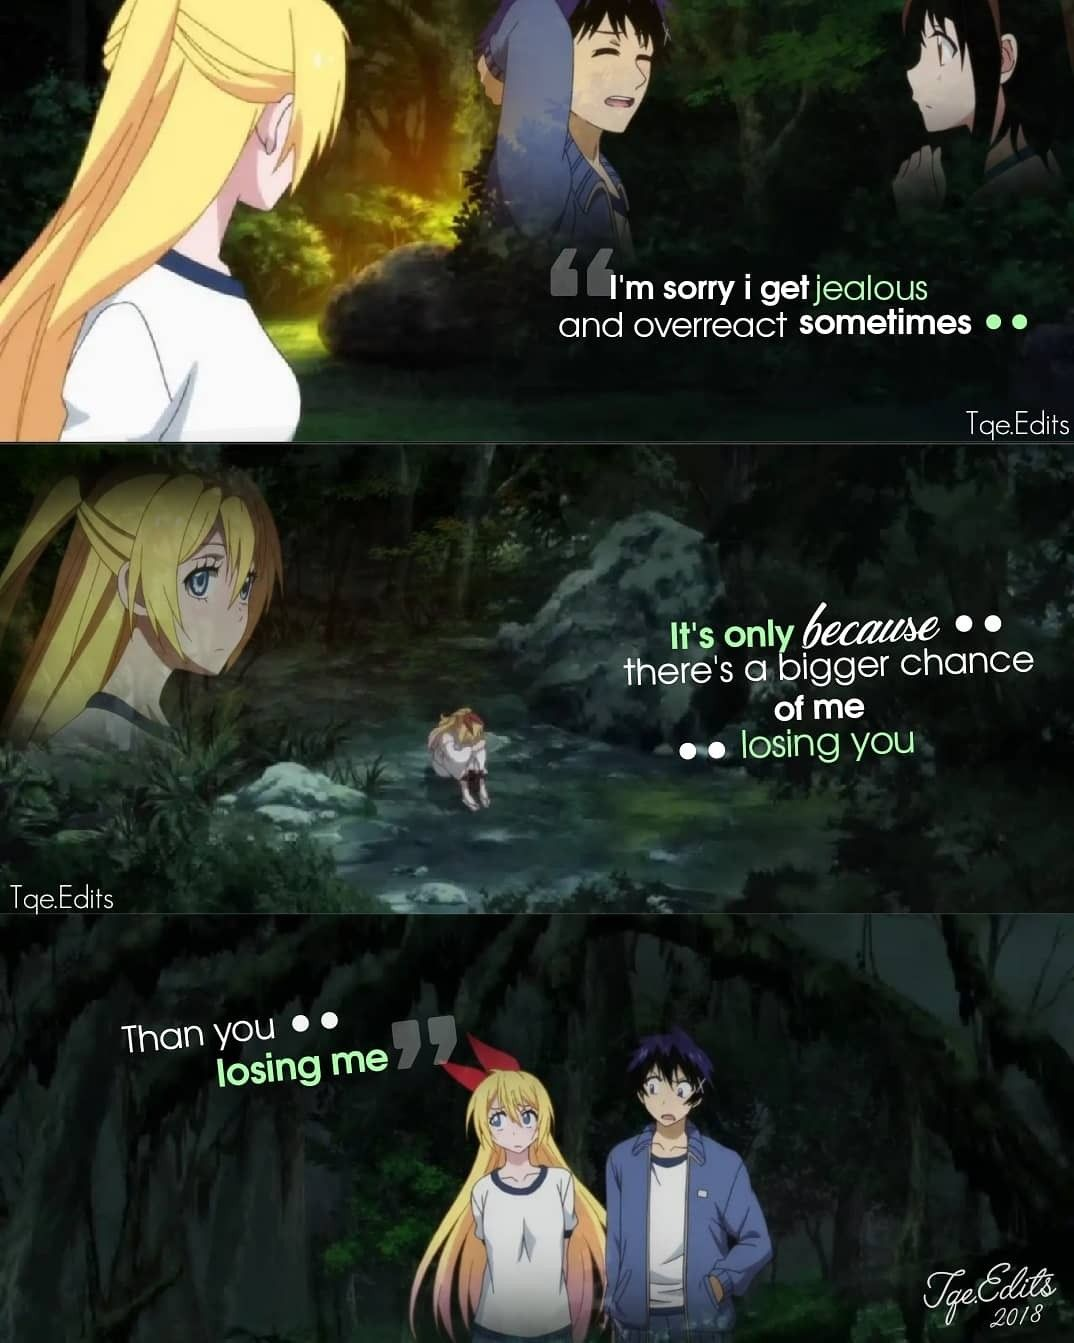 I Am Sorry I Get Jealous Even Though You Don T Belong To Me Anime Love Quotes Anime Quotes Nisekoi